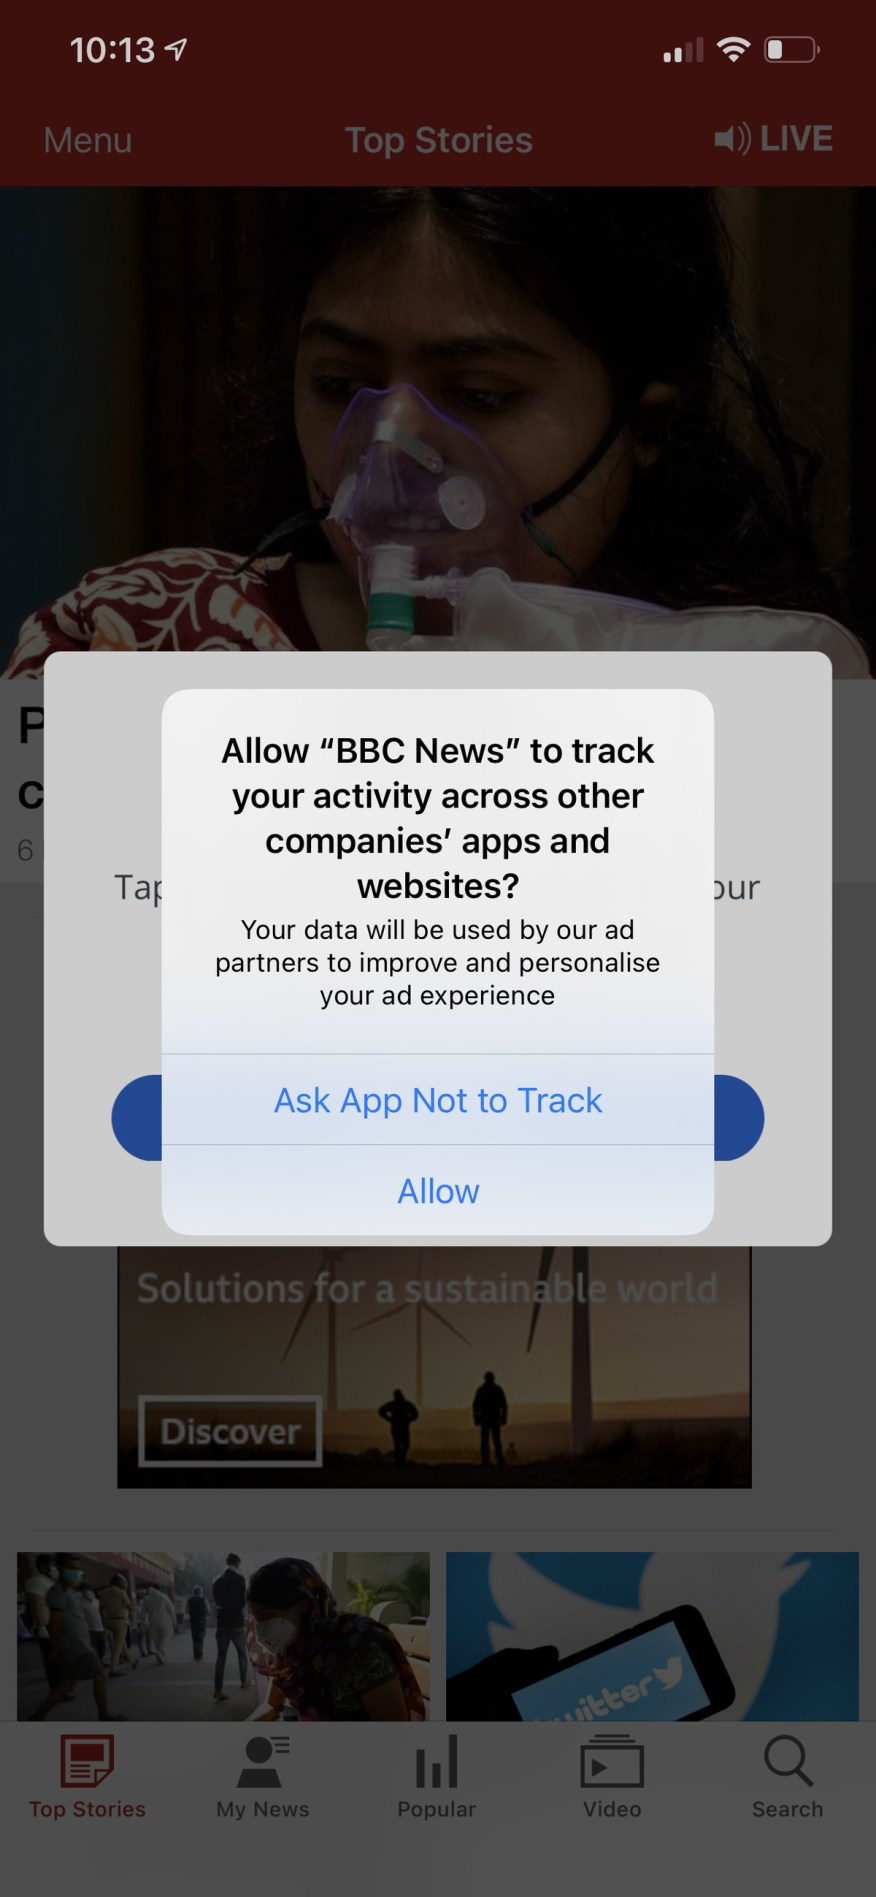 It's up to you now whether or not to allow each app to follow you.